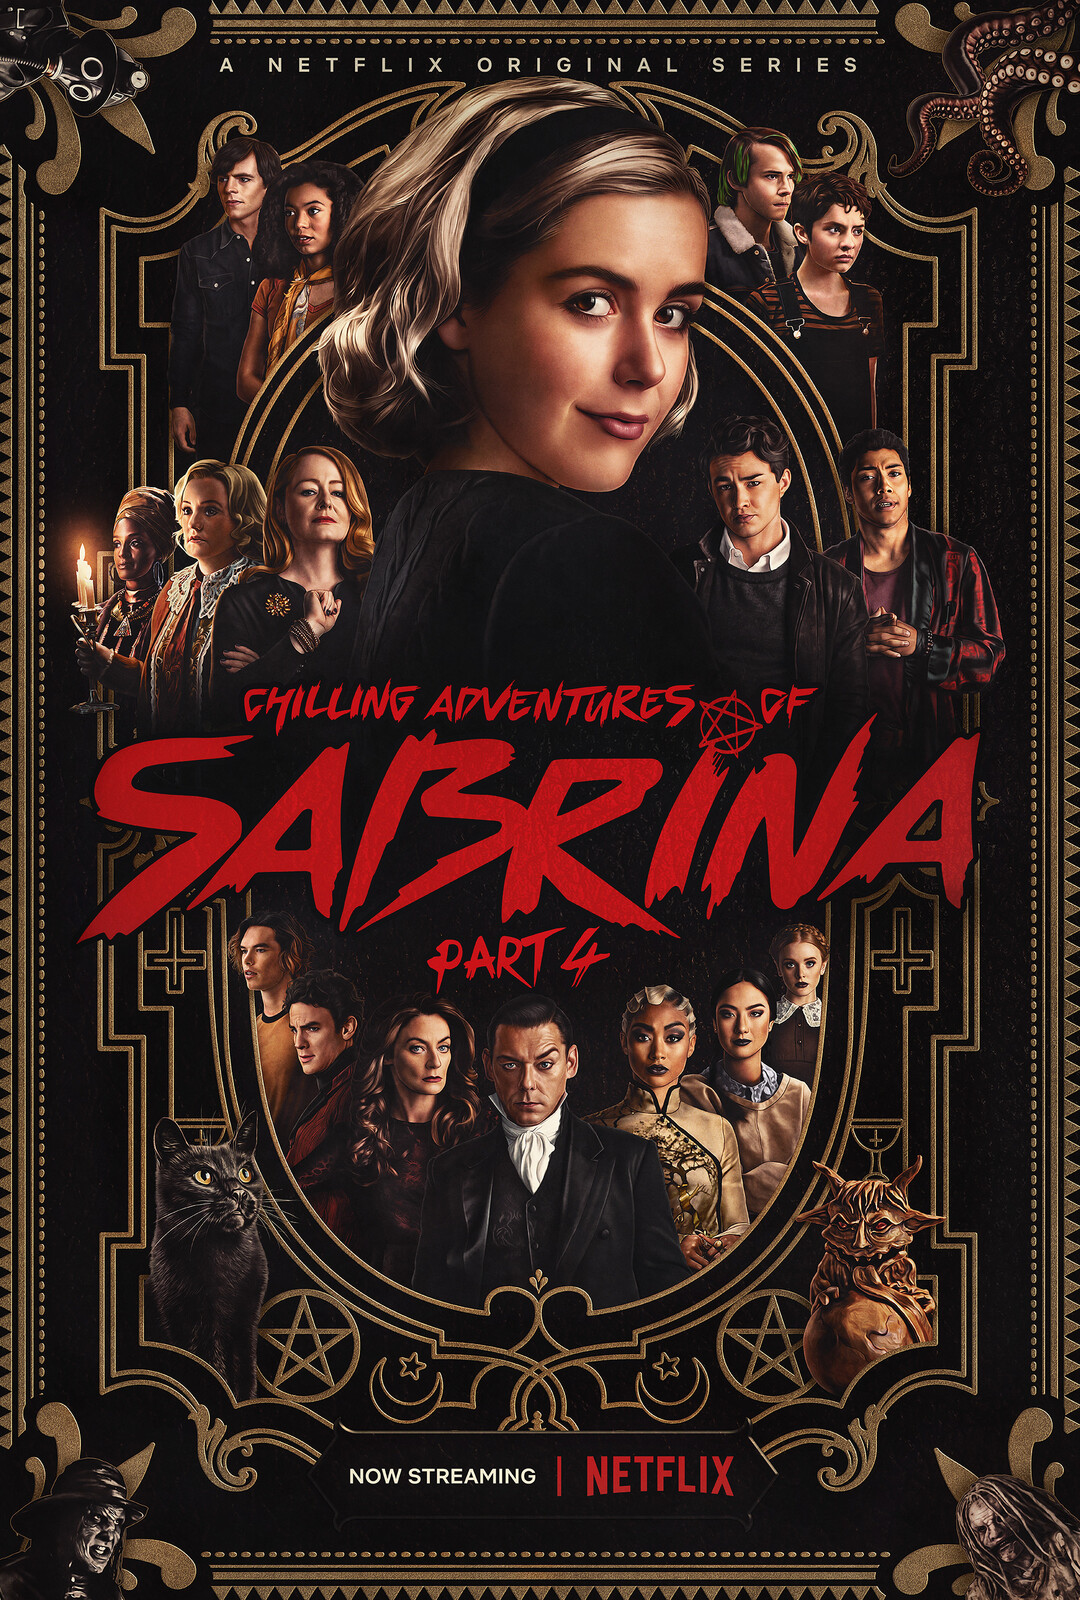 Illustrated poster for Chilling Adventures of Sabrina Season 4.